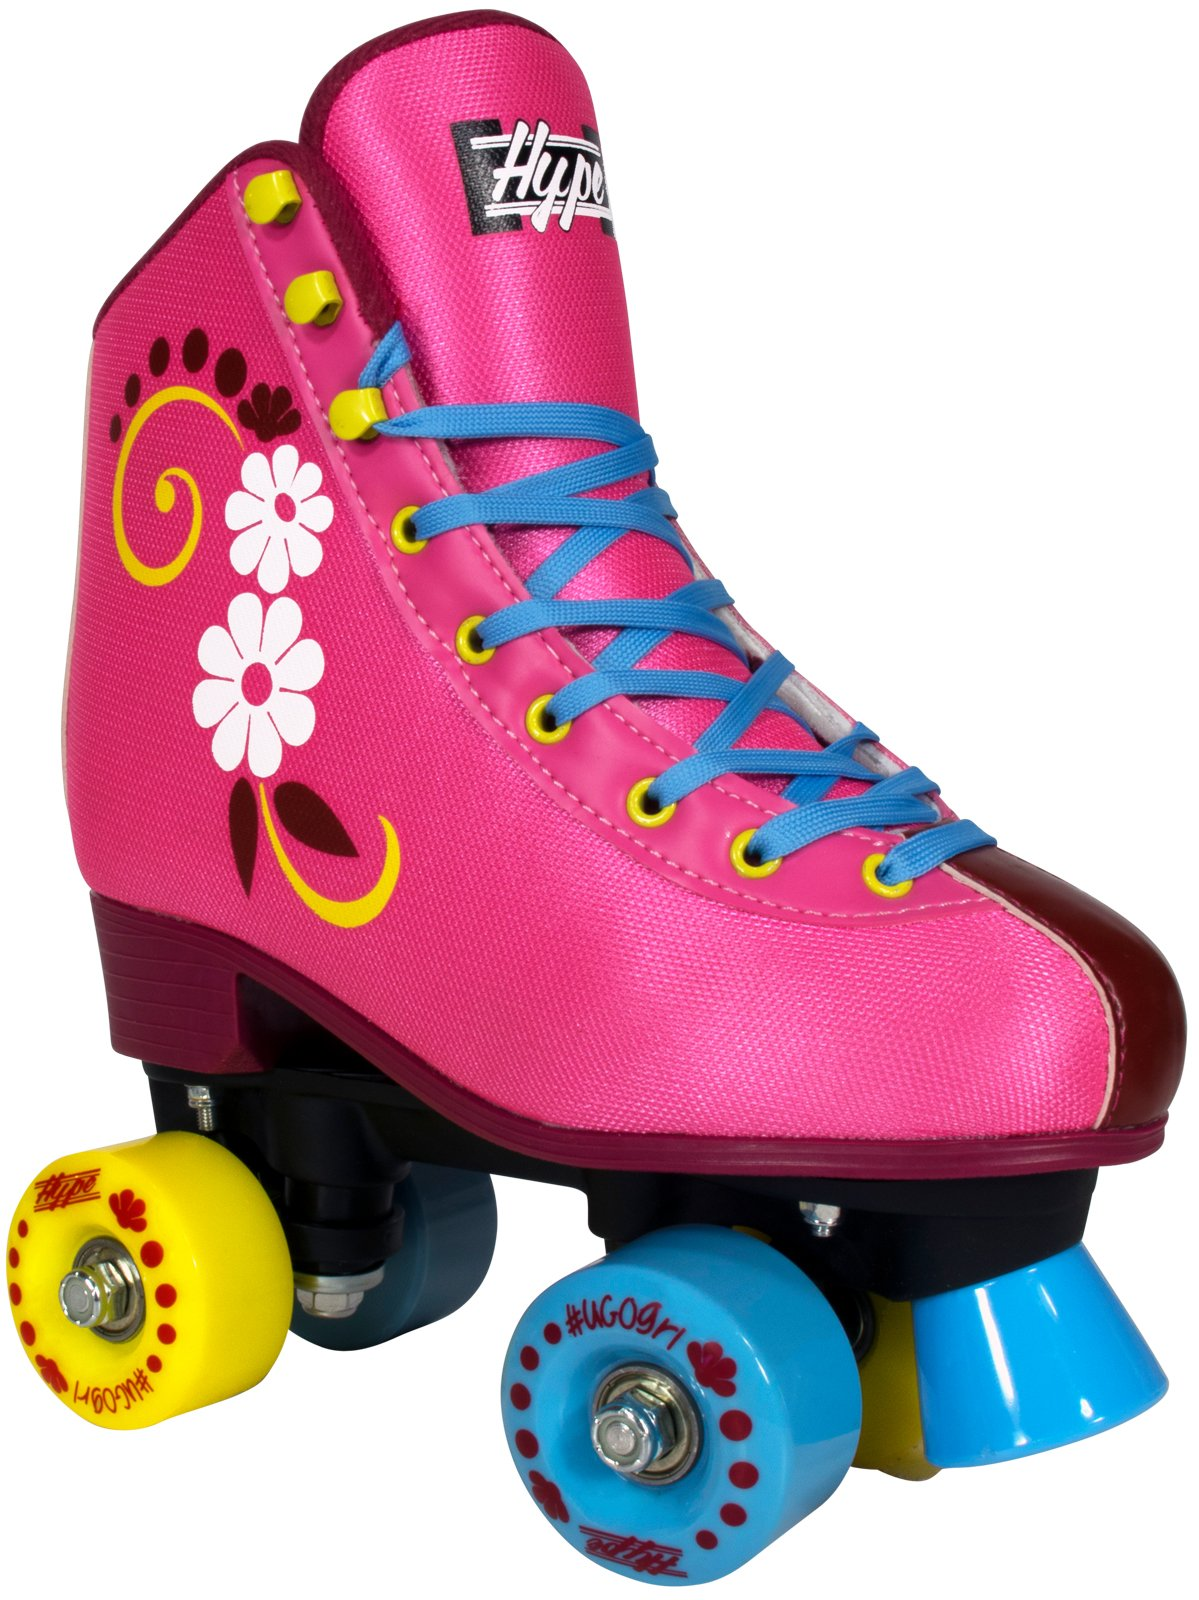 Roller Skates for Girls | HYPE uGOgrl girls quad roller skates | Comfortable fit | Made for Fun | Looks great (4)